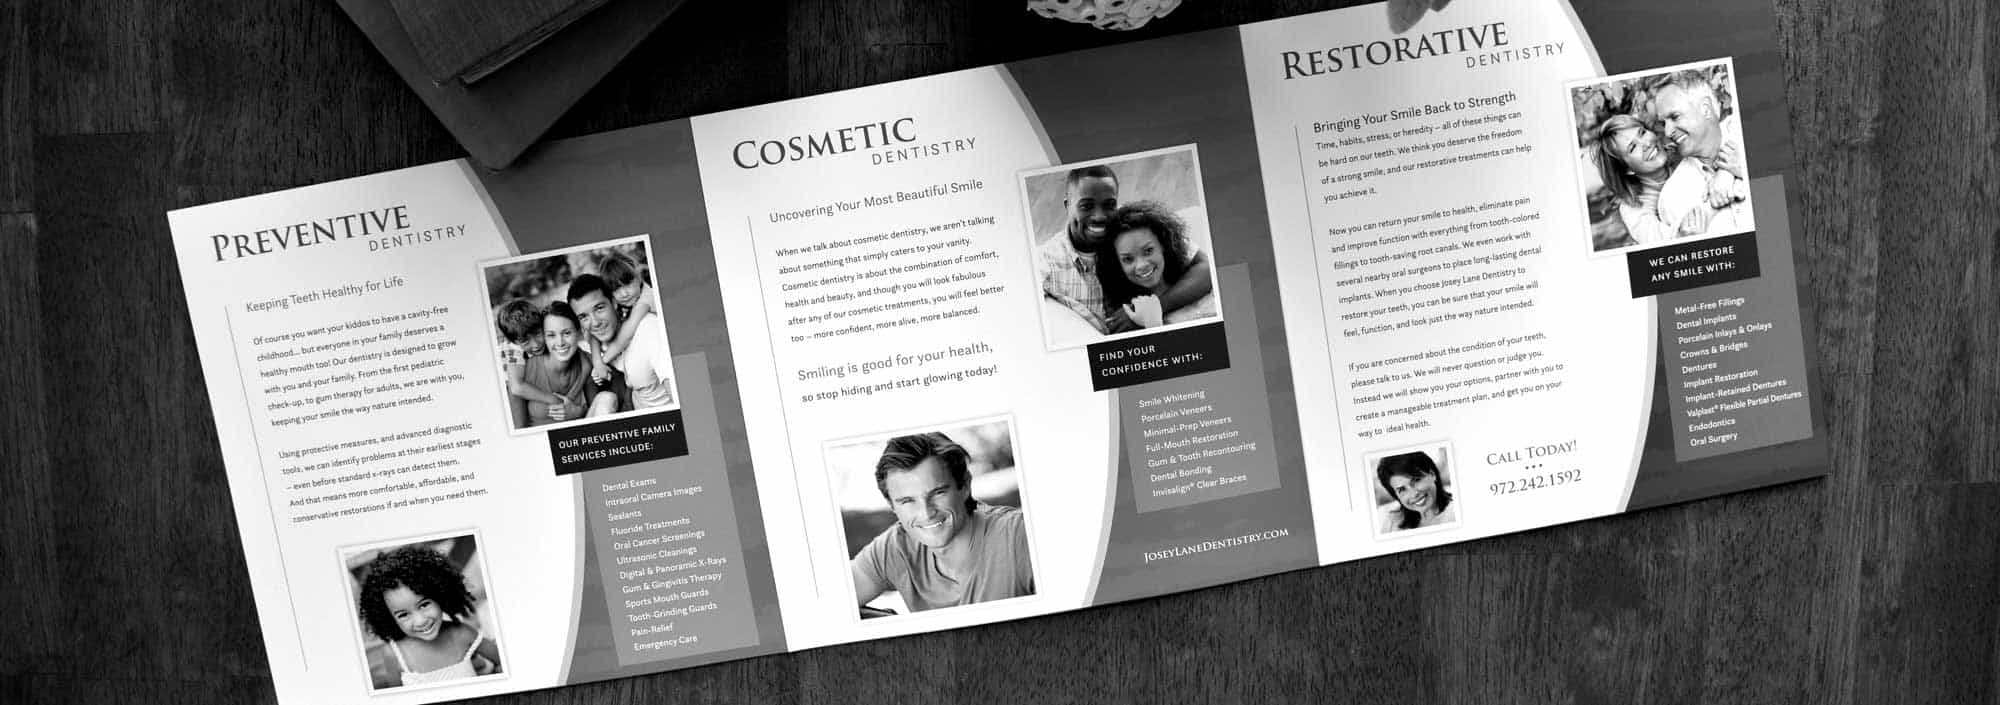 dental office brochure bw